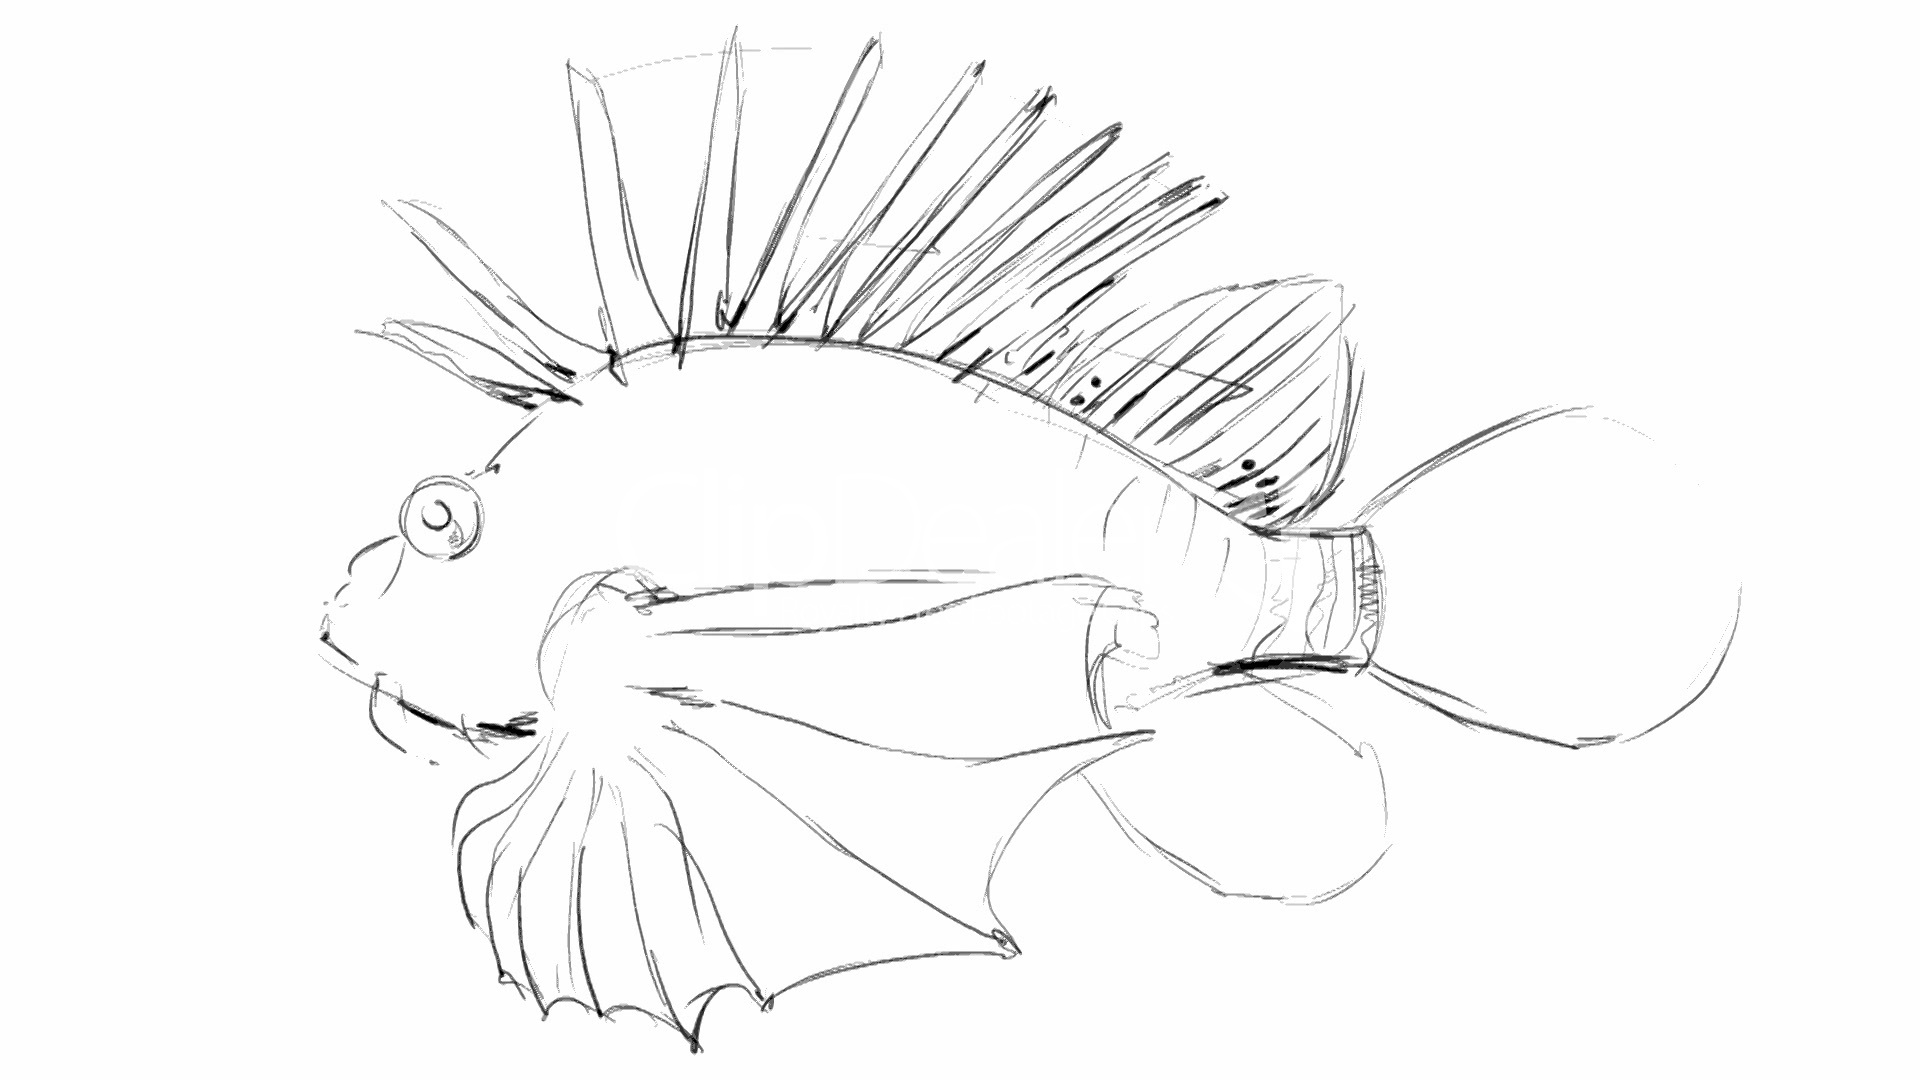 1920x1080 Pencil Sketch Of Sea Fish Royalty Free Video And Stock Footage